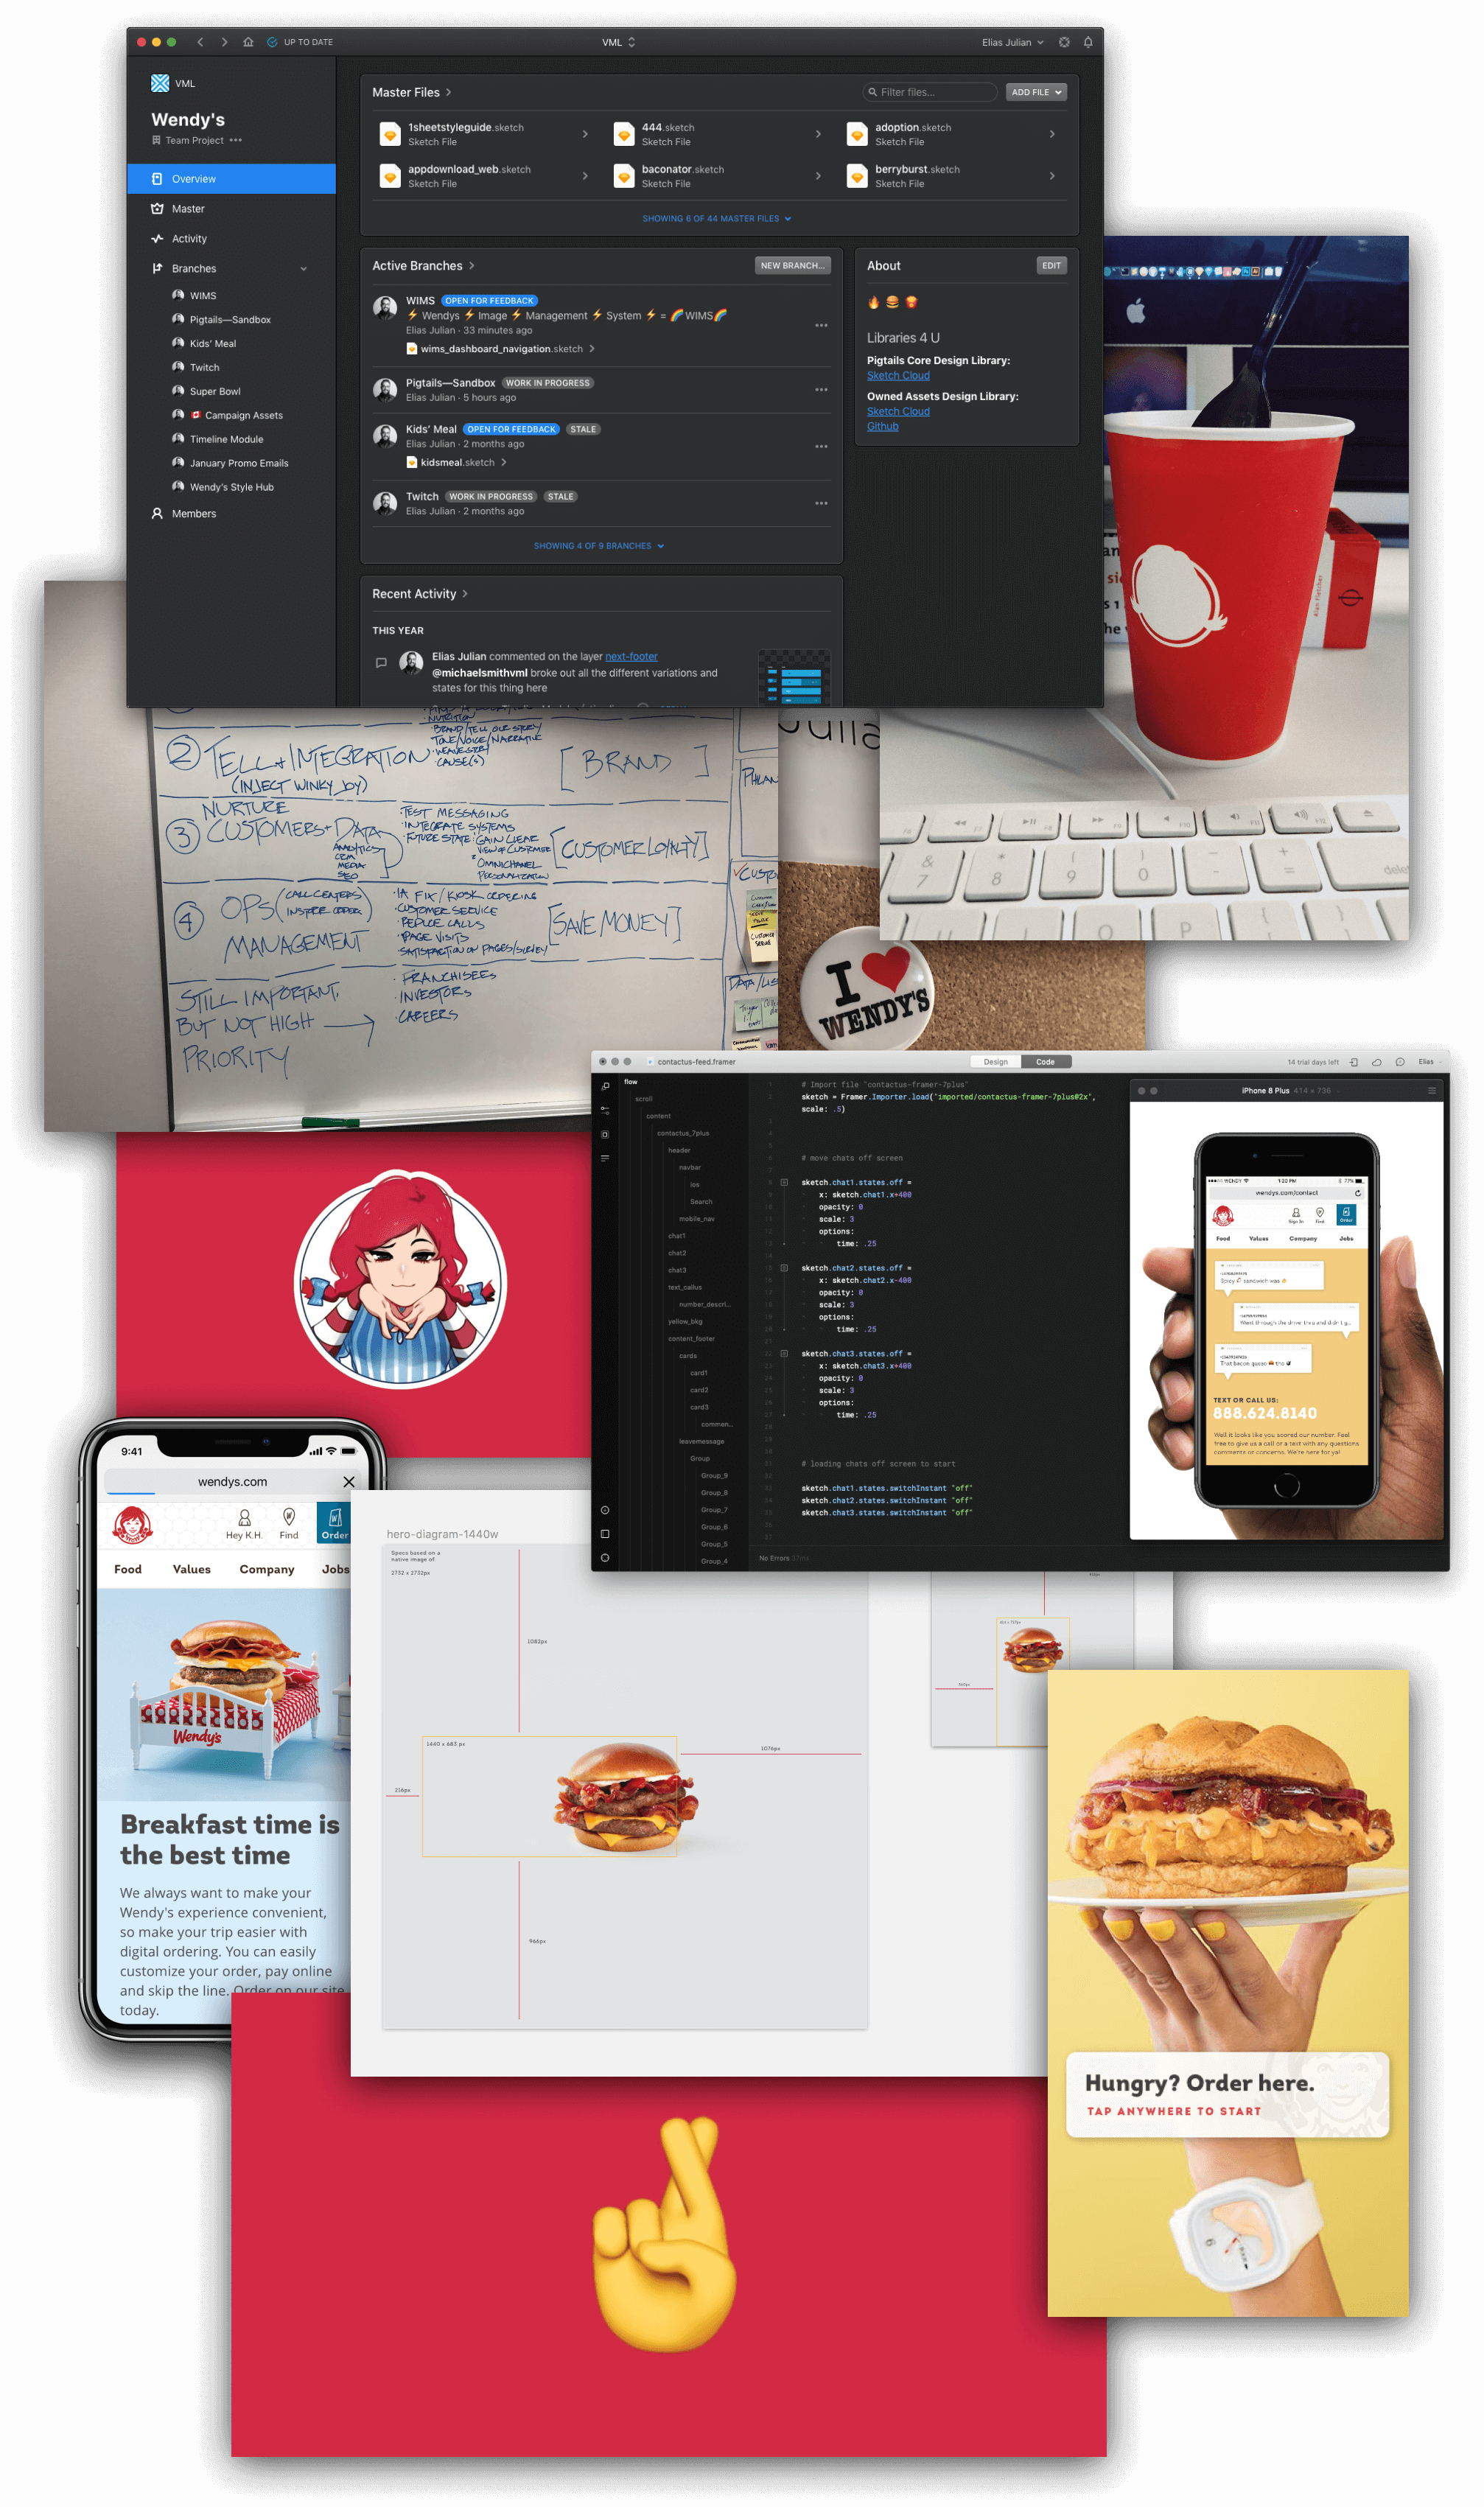 Collage of process artifacts, app screenshots, food pics, and sketches